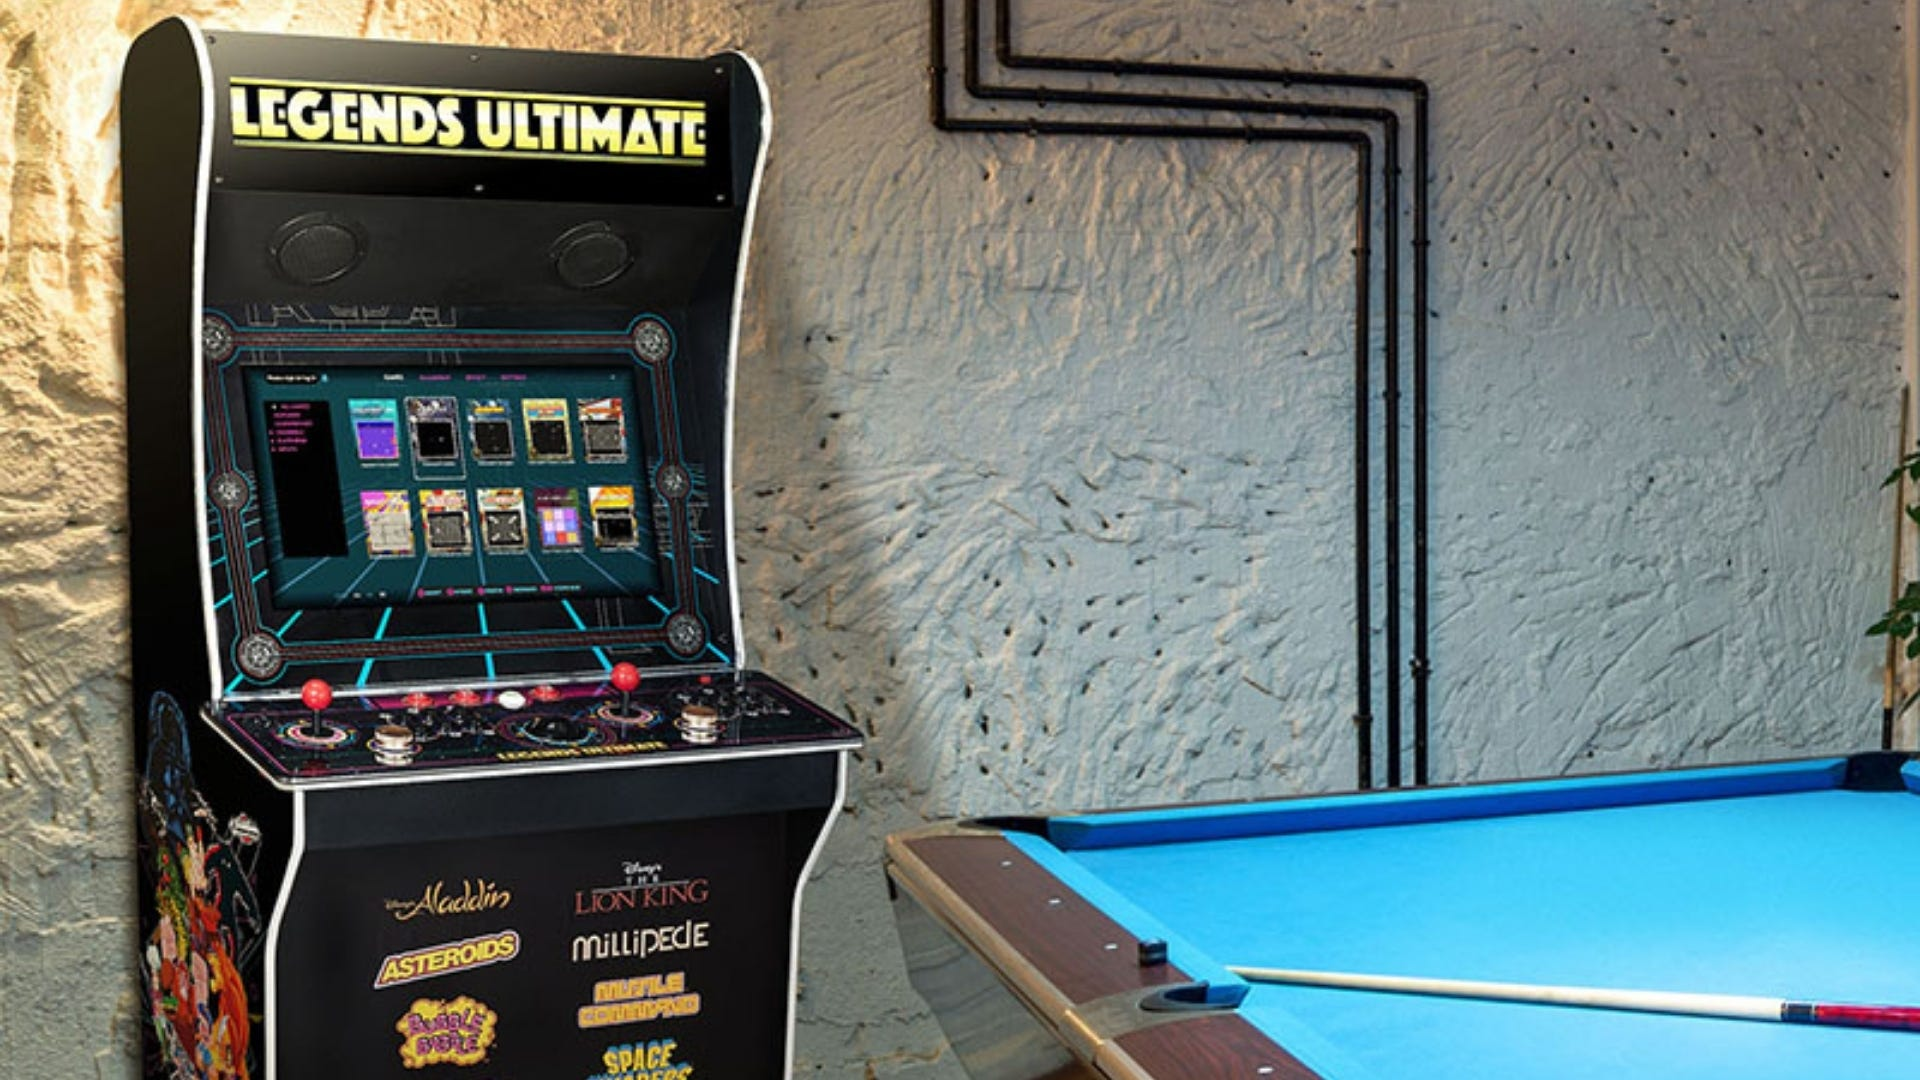 The Legends Ultimate arcade game machine next to a pool table in a game room.